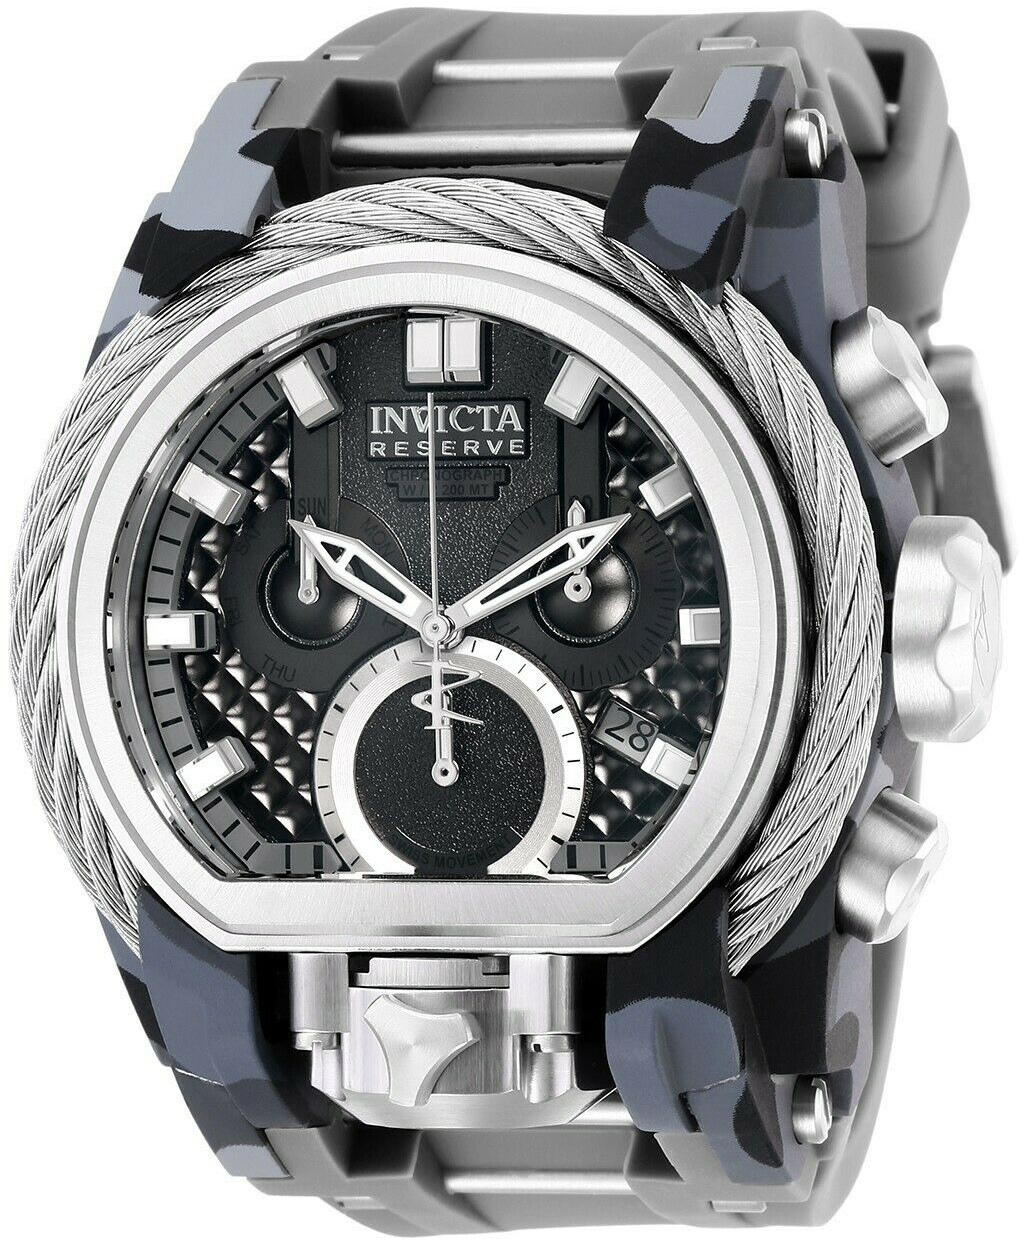 Invicta Reserve Herreur 26439 Sort/Gummi Ø52 mm